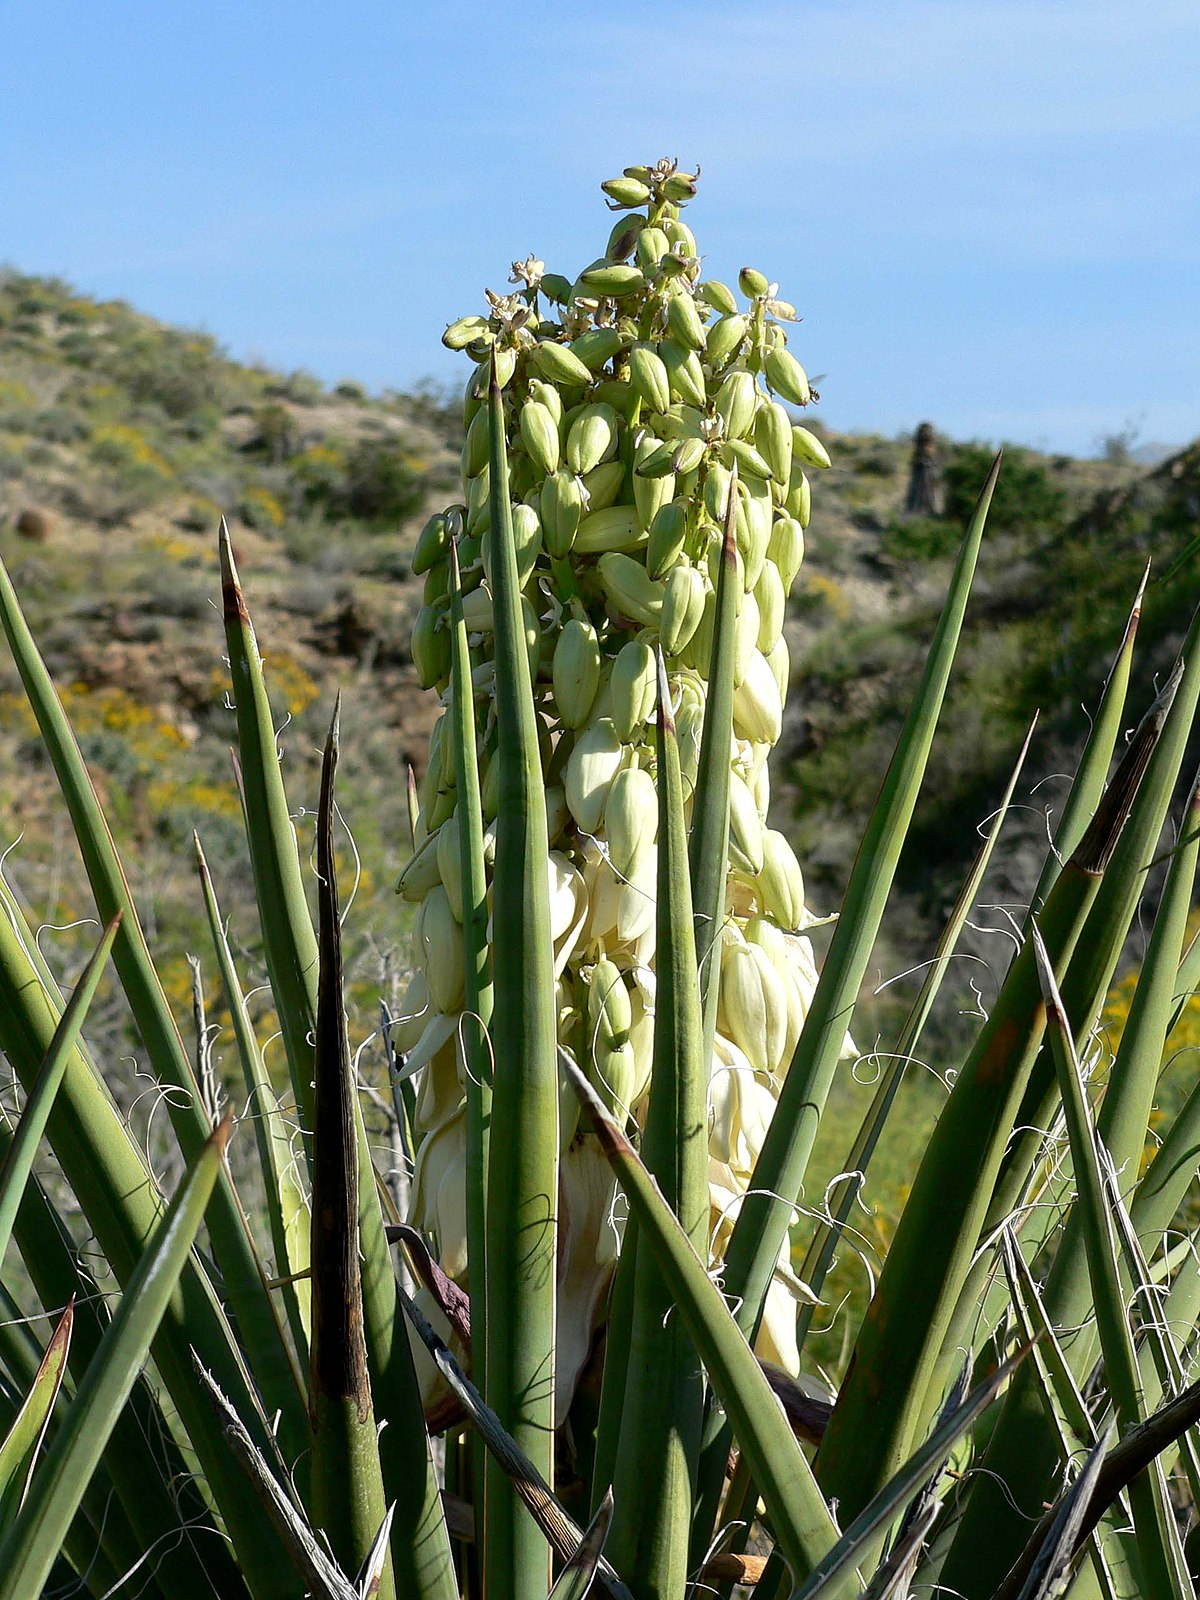 Yucca Extract In Dog Food Seizures